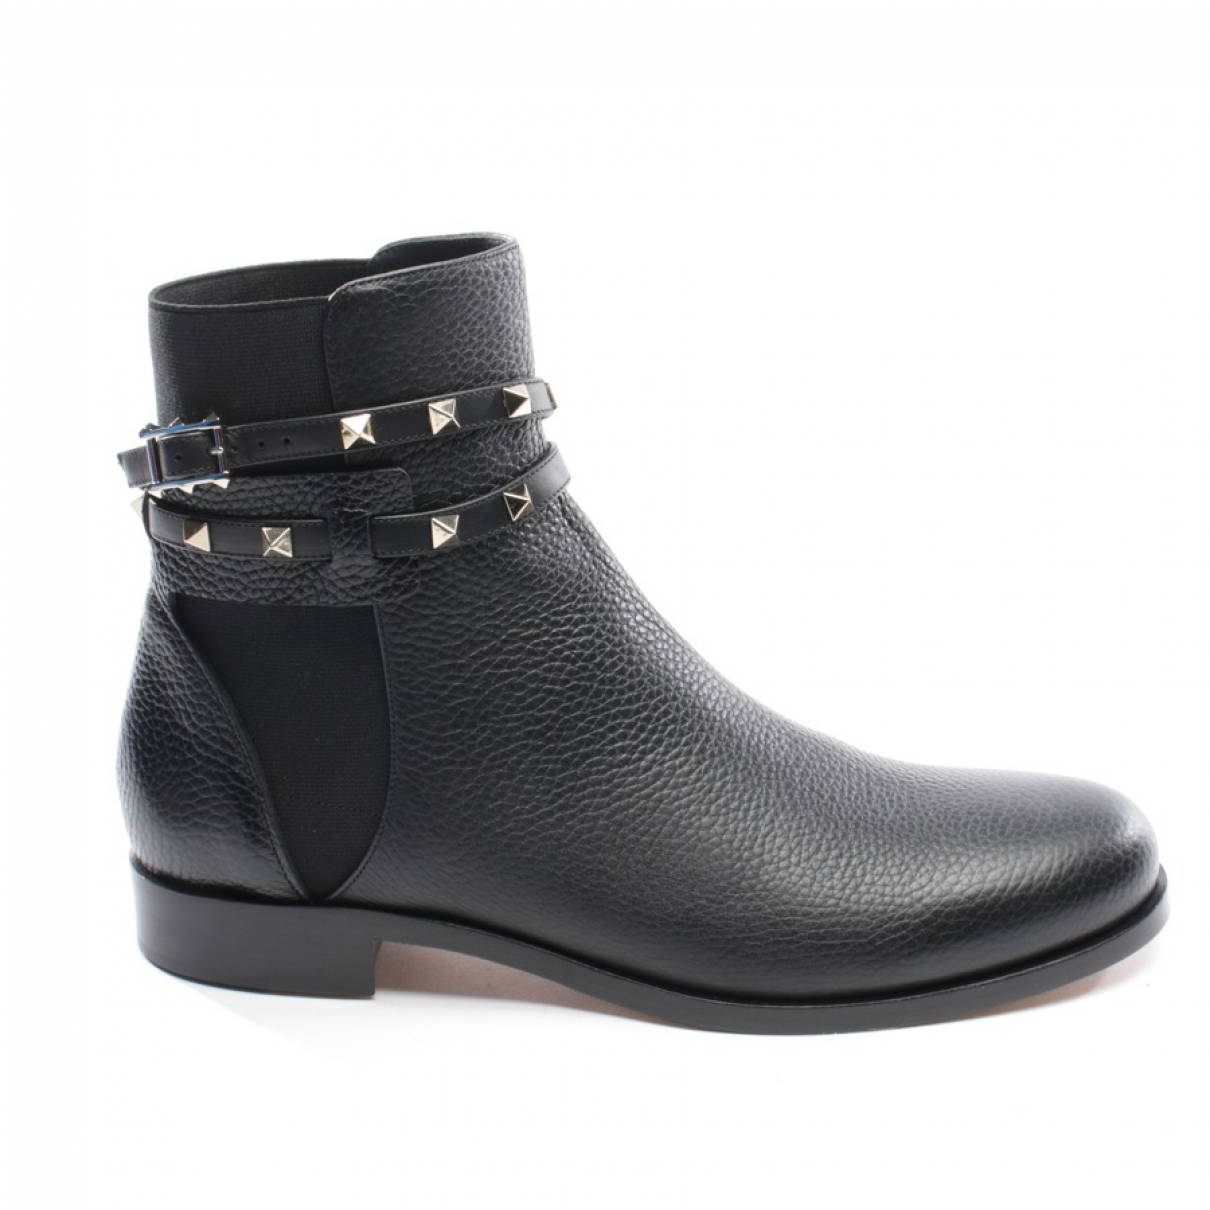 Valentino Garavani \N Black Leather Ankle boots for Women 41.5 EU